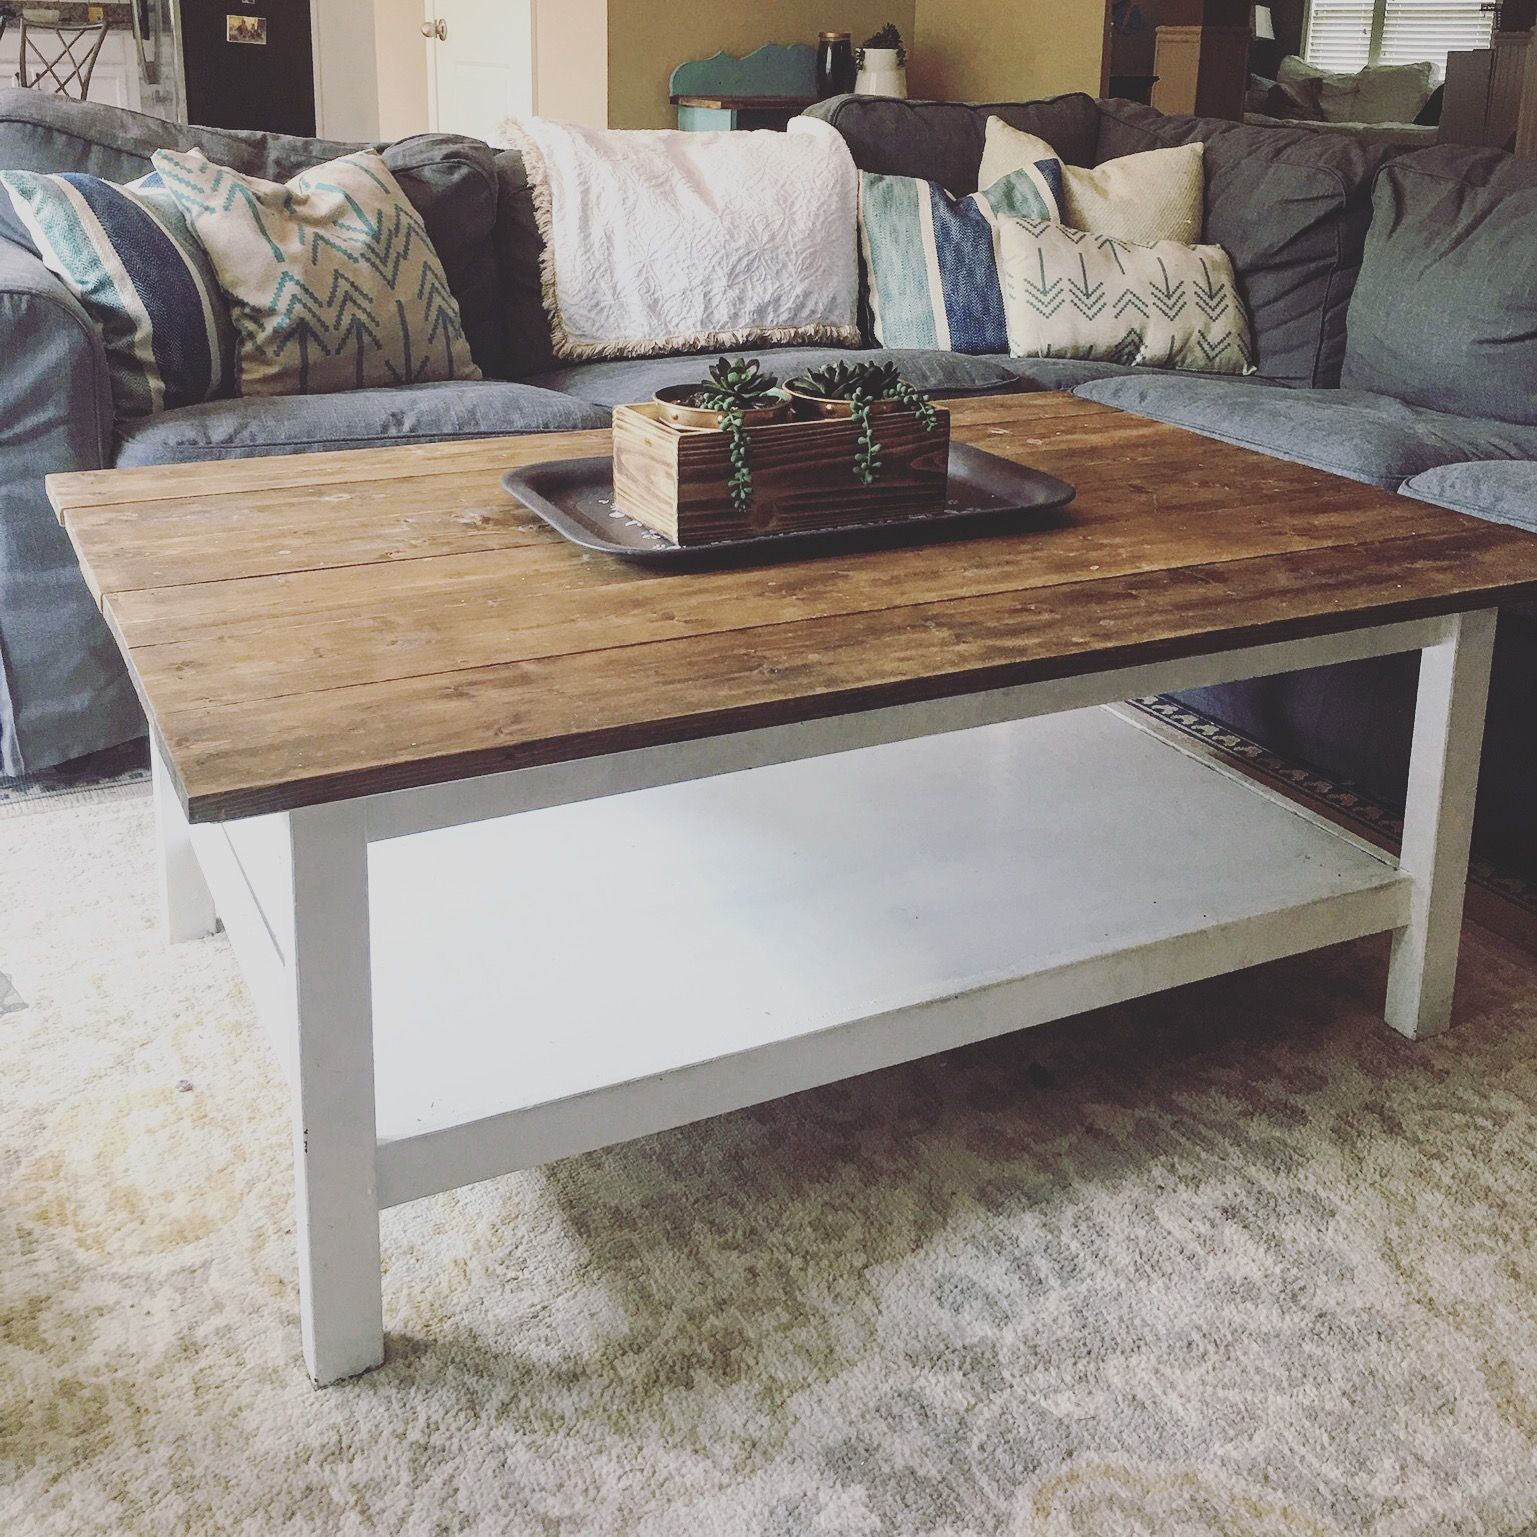 Ikea Coffee Table Use To Be All Black Now It S Been Given A Shabby Chic Makeover And Looks Fabulous Sjm F Diy Kitchen Table Ikea Coffee Table Wood Table Diy [ 1000 x 1000 Pixel ]